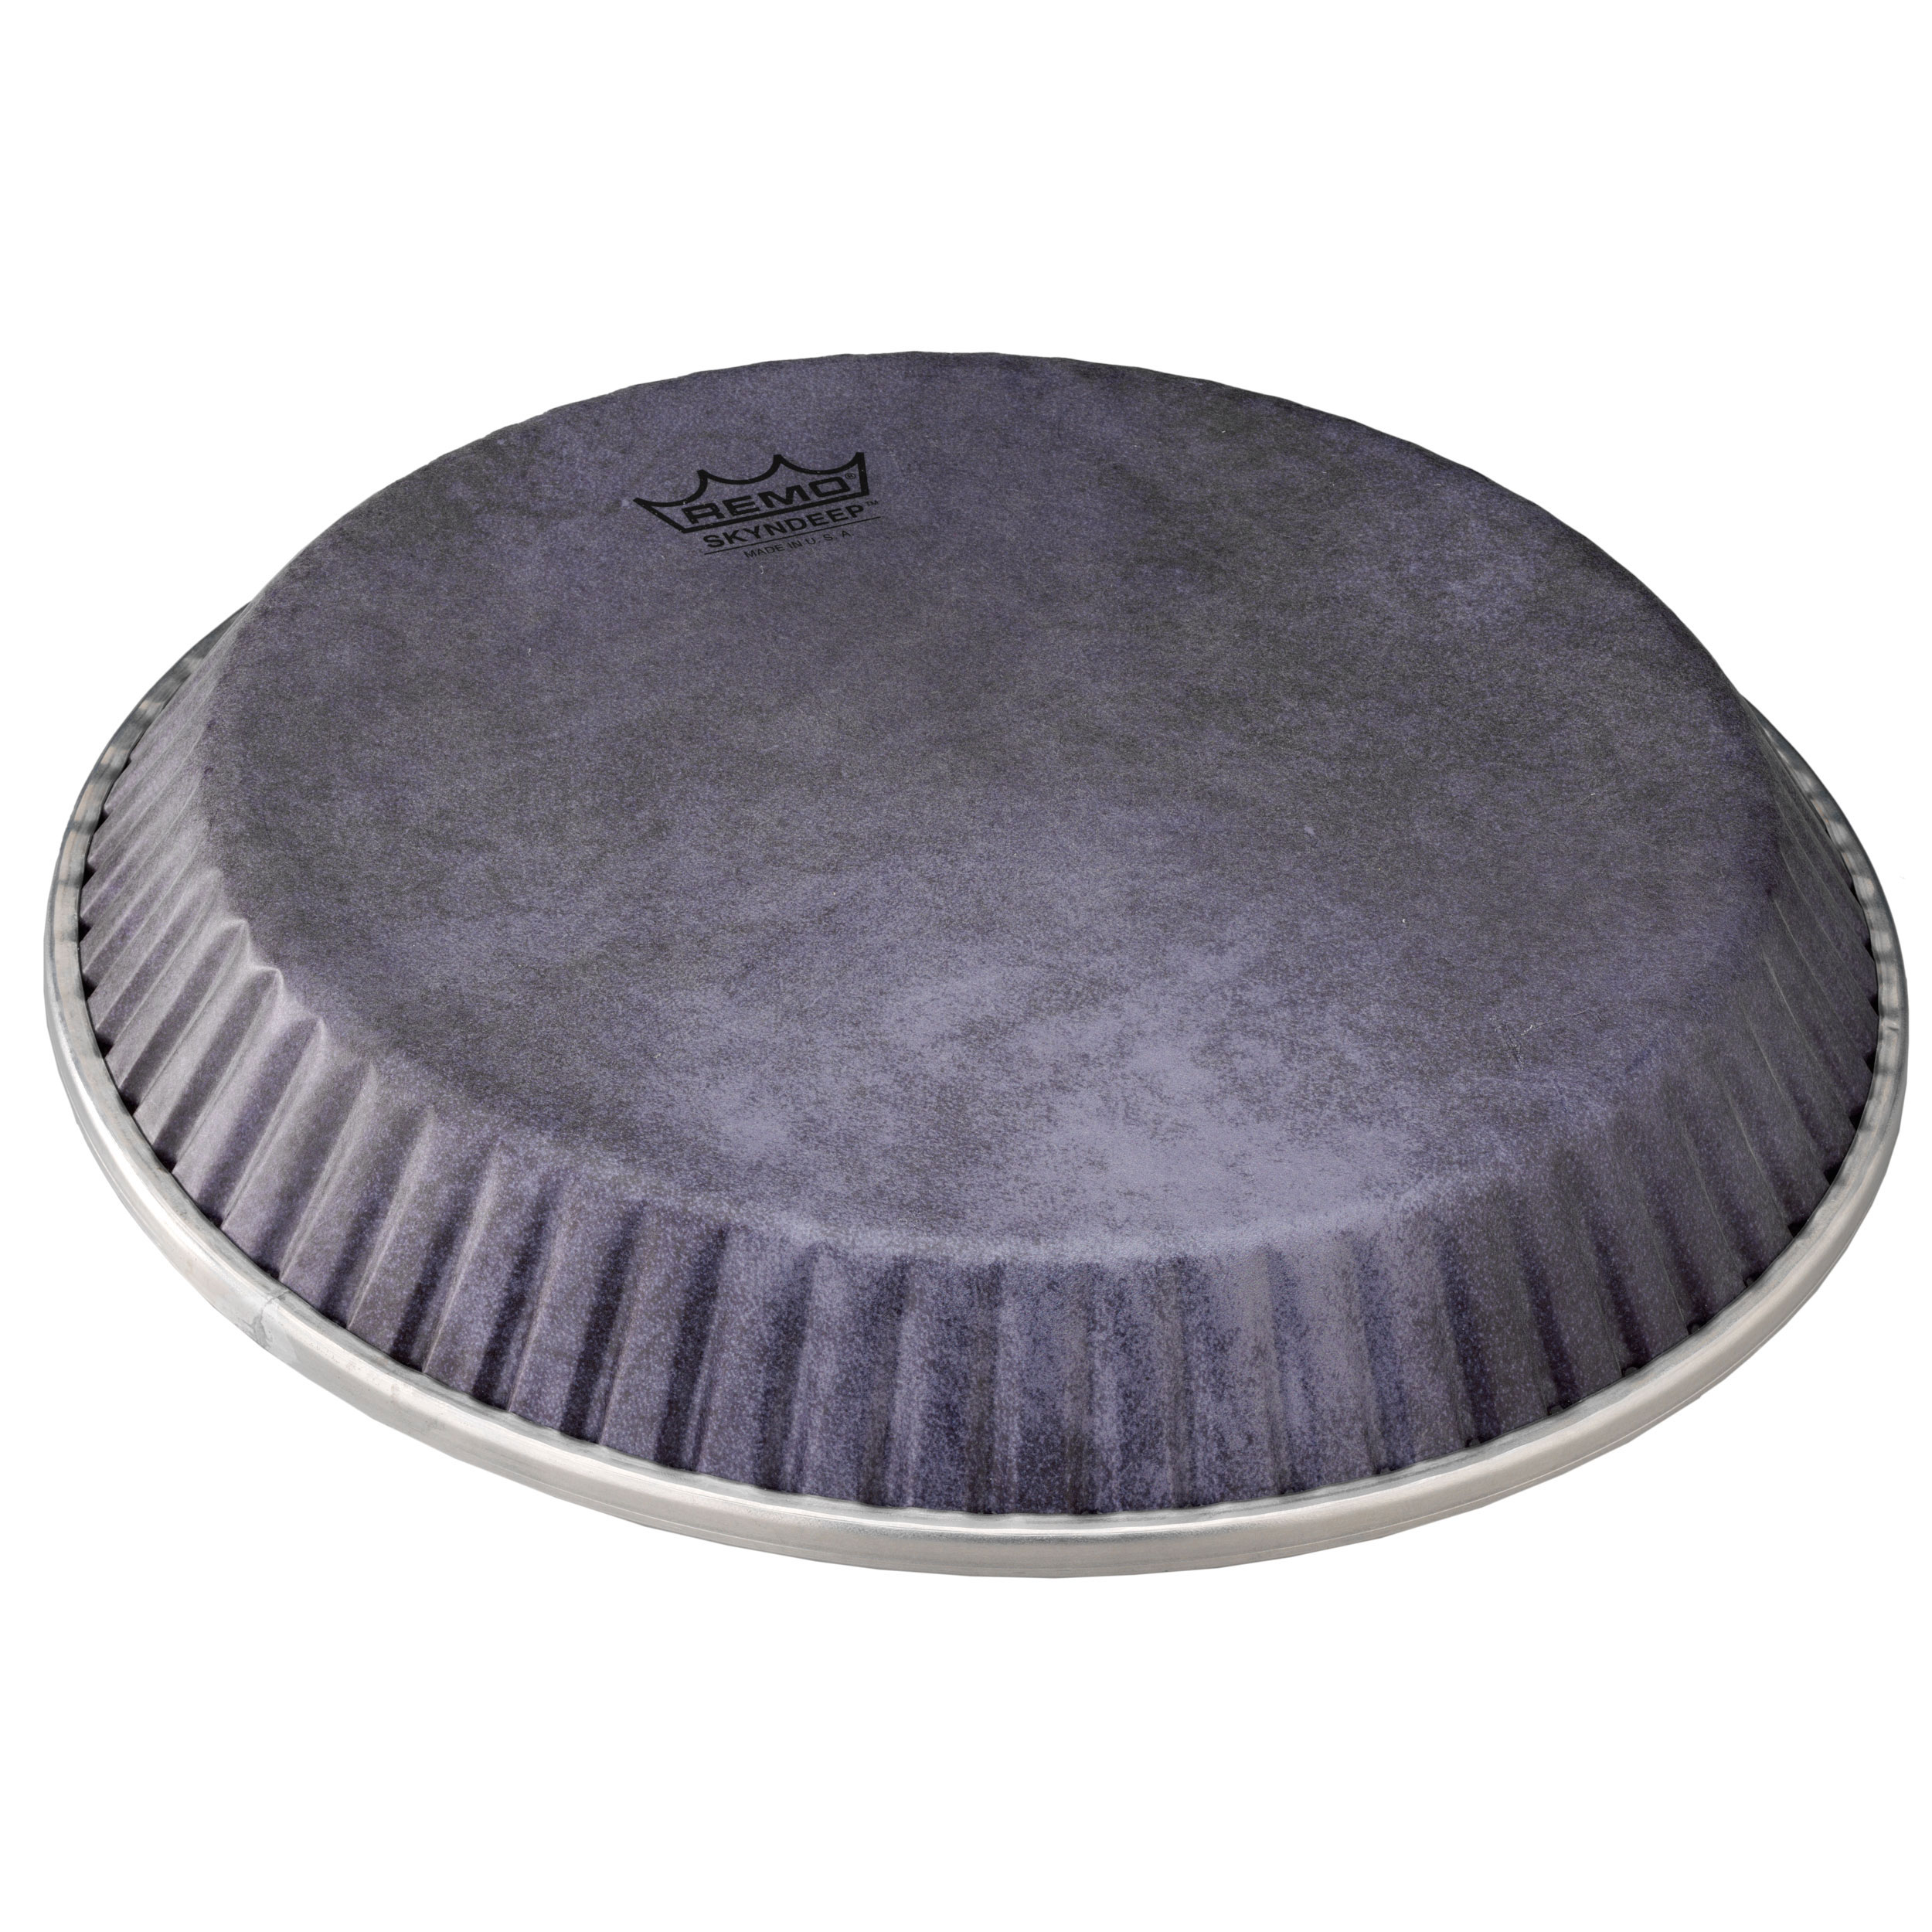 """Remo 12.5"""" Symmetry Skyndeep Conga Drum Head (D1 Collar) with Black Calfskin Graphic"""